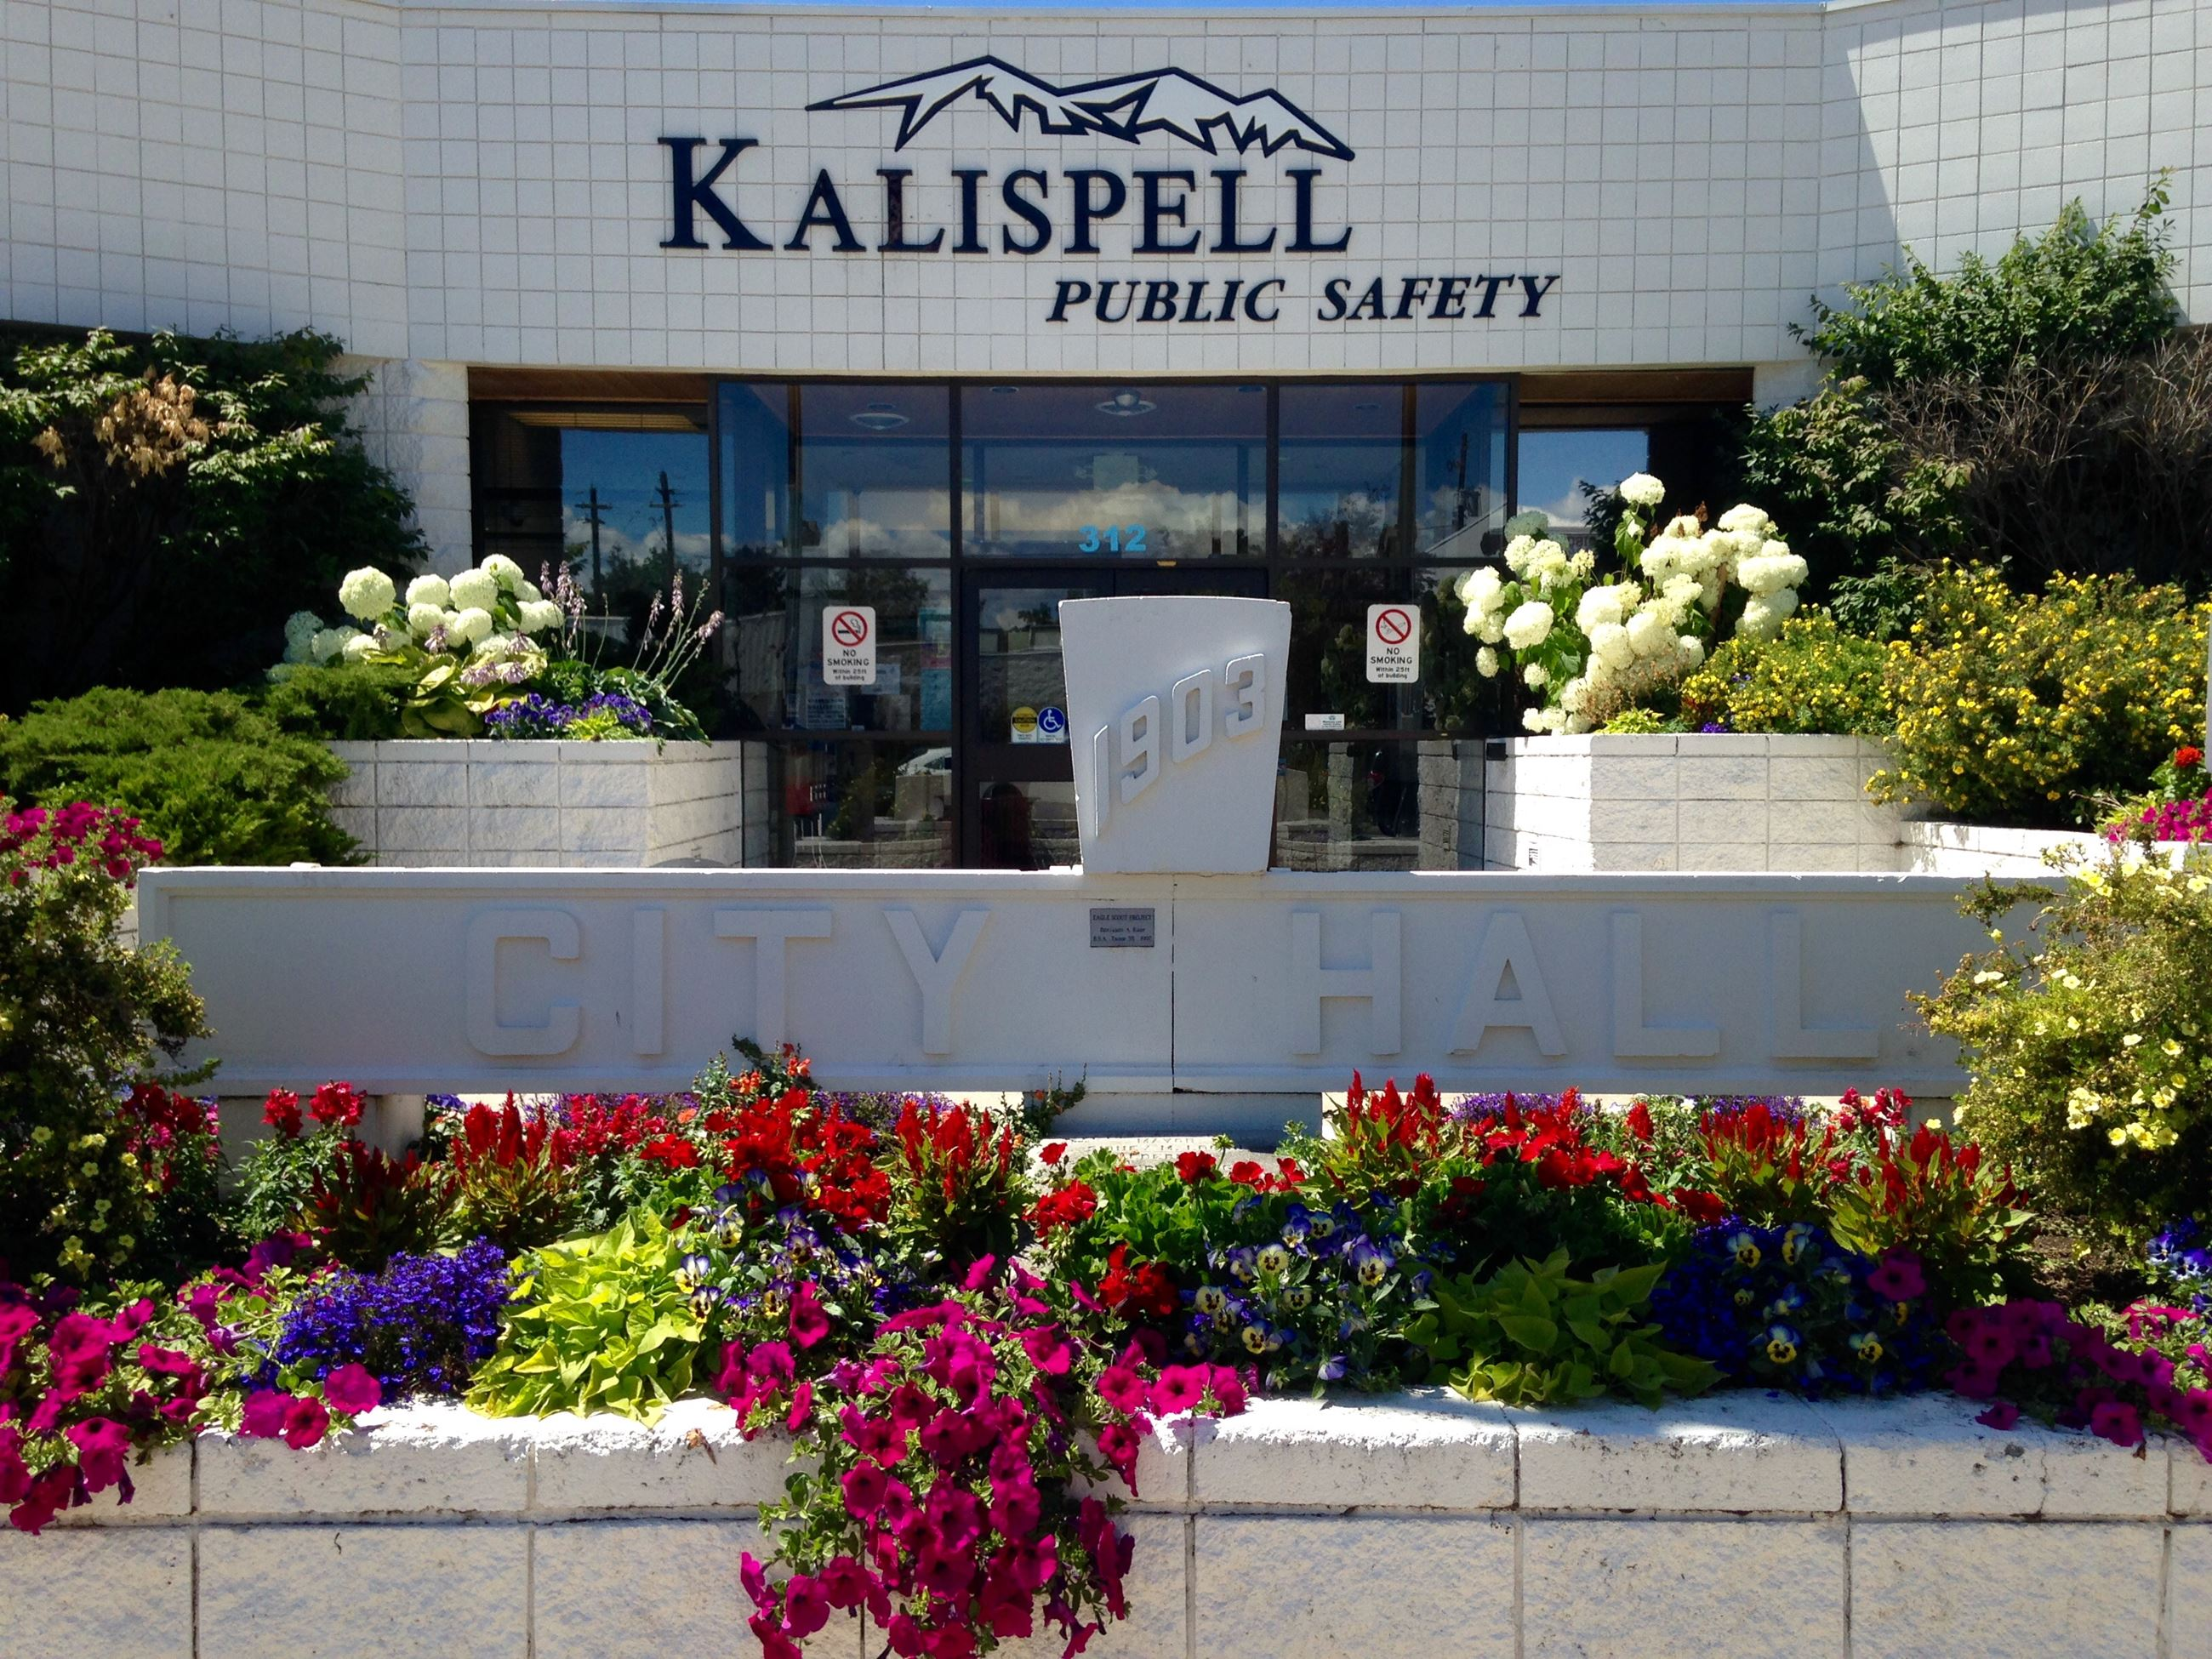 Public Safety Building with flowers